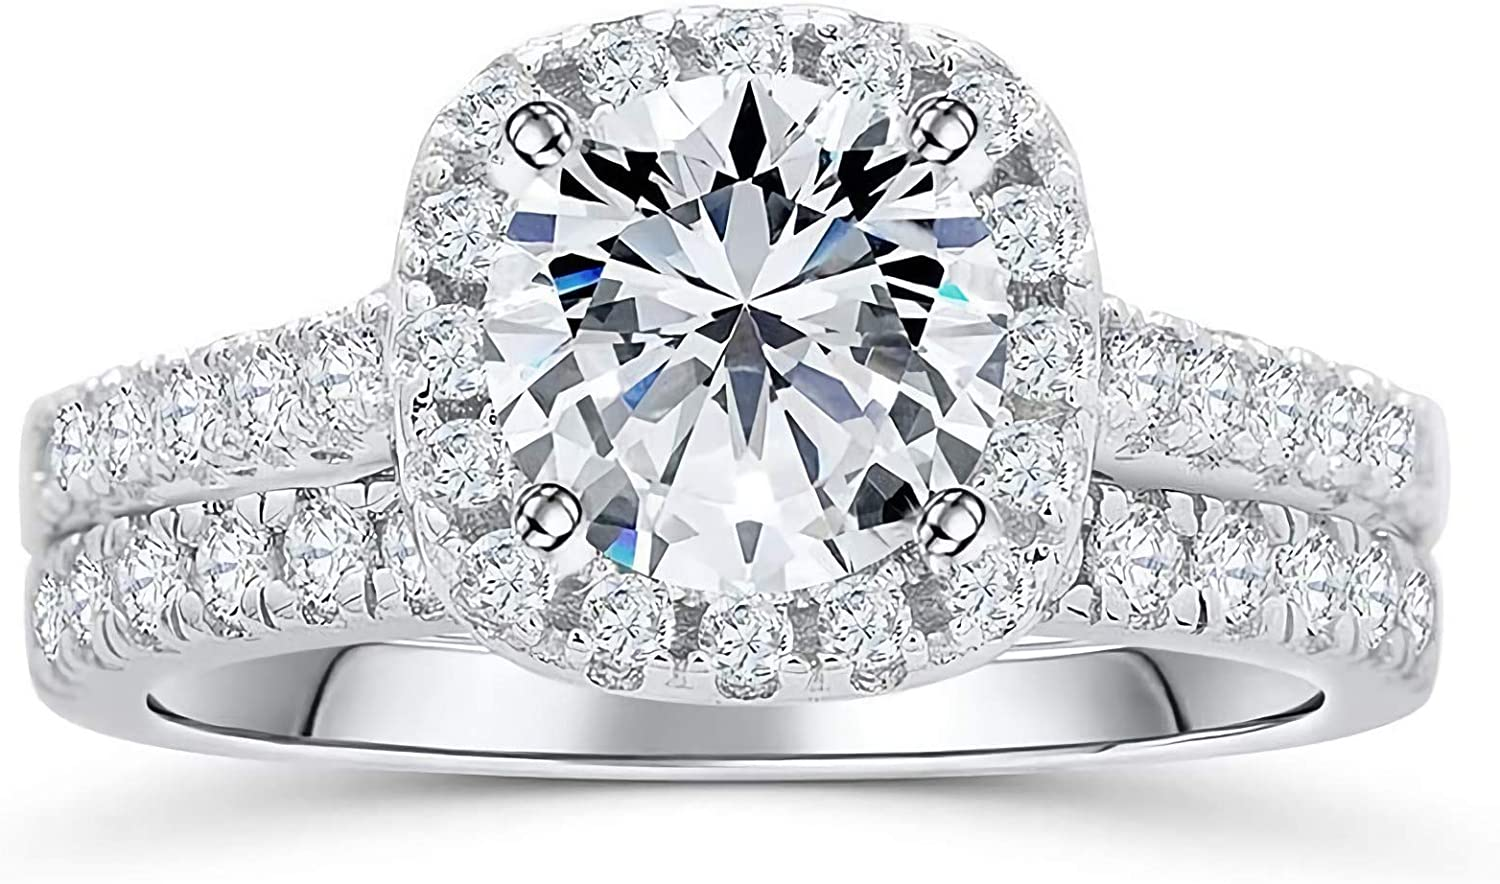 Aihpos 1-1 2 Carat ctw Moissanite Sets wholesale Rin Louisville-Jefferson County Mall Halo Bridal Wedding